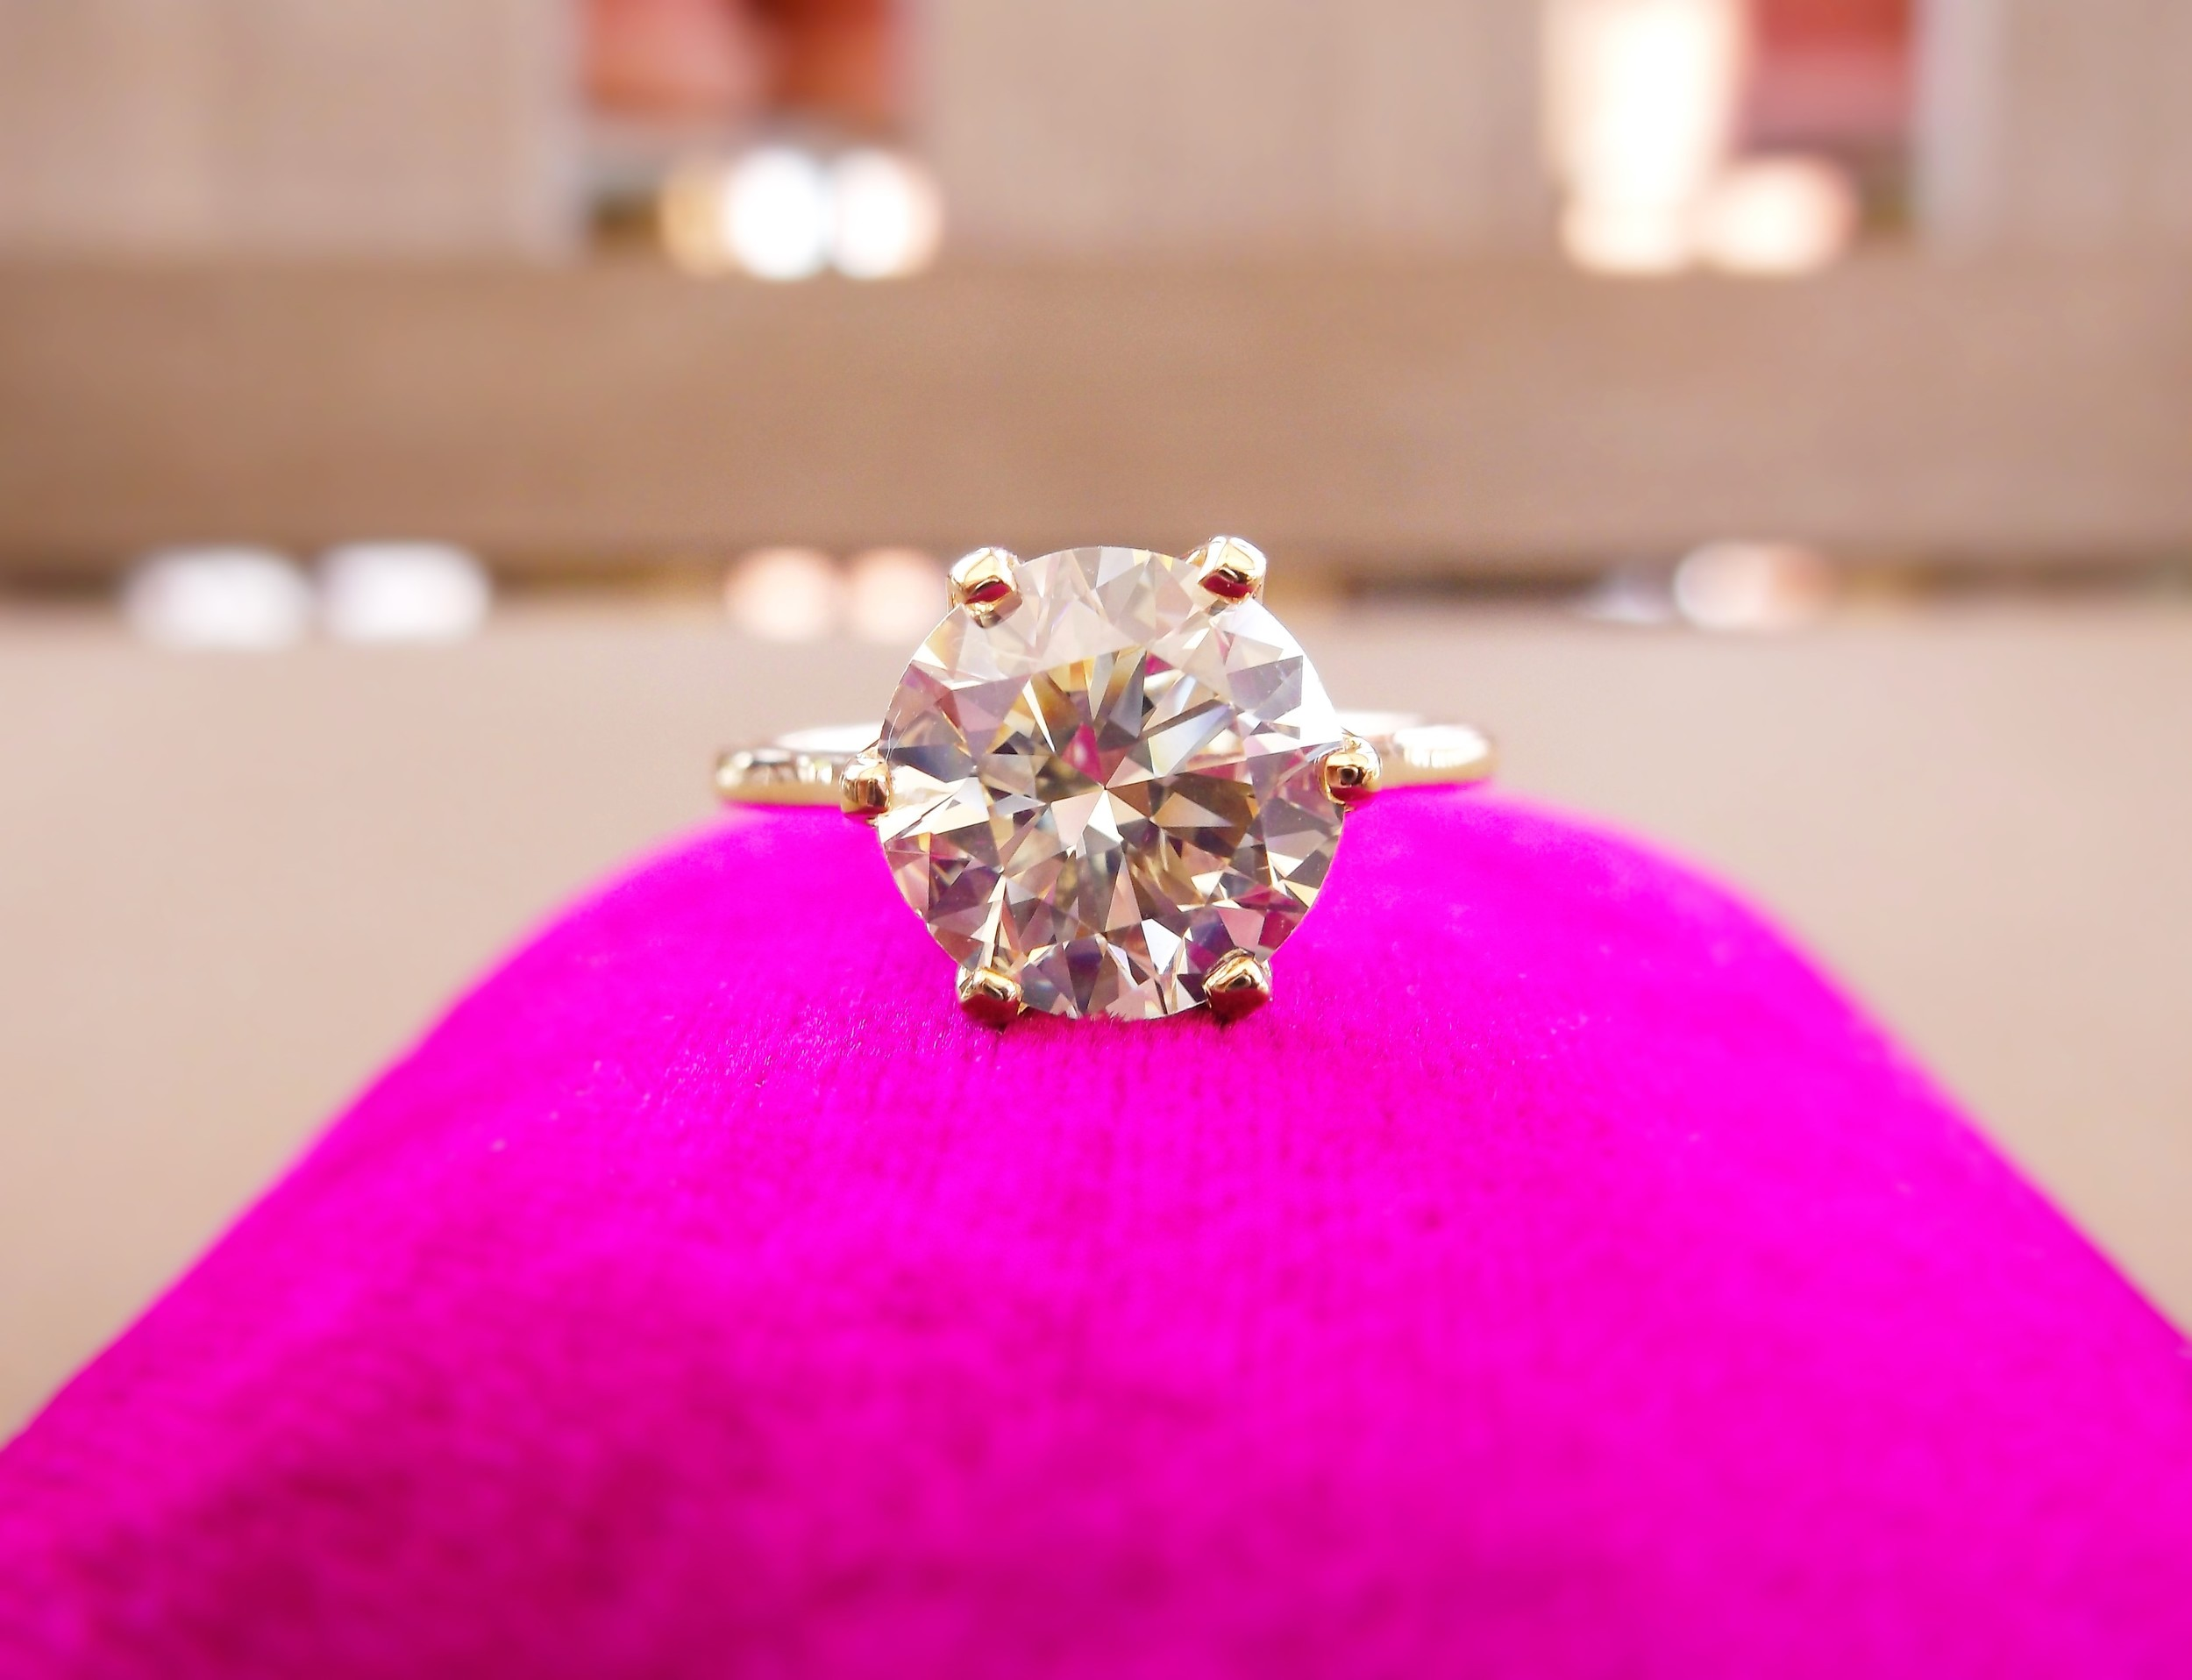 SOLD - Resplendent 3.06 carat transitional cut diamond with a hint of color set in a yellow gold solitaire setting.